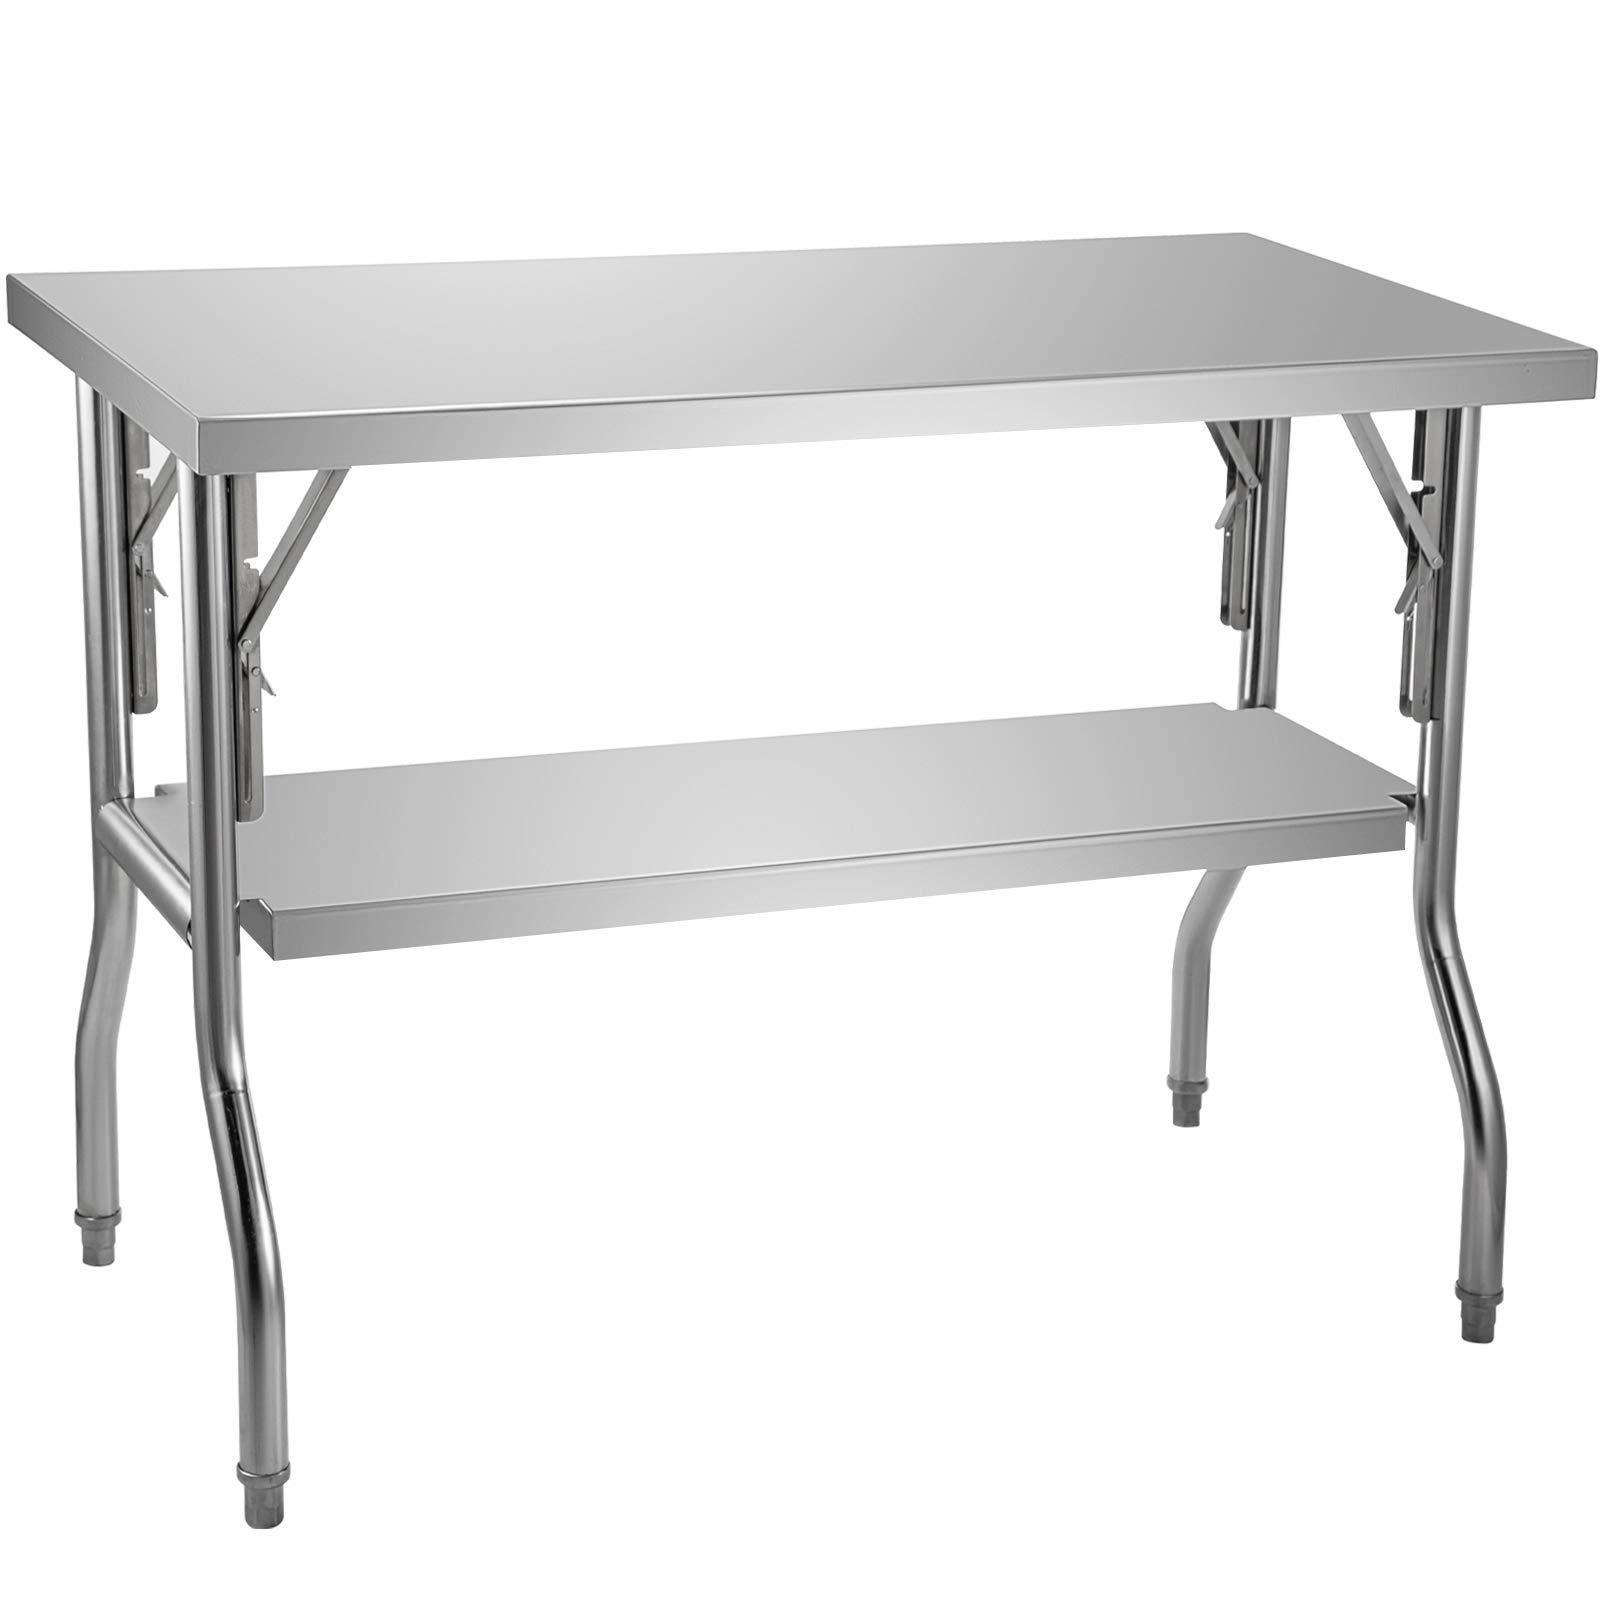 VEVOR Commercial Worktable Workstation 48x30 Inch Folding Commercial Prep Table, Double-Shelf Stainless Steel Folding Table, Kitchen Work Table with 772 lbs Load Silver Stainless Steel Kitchen Island